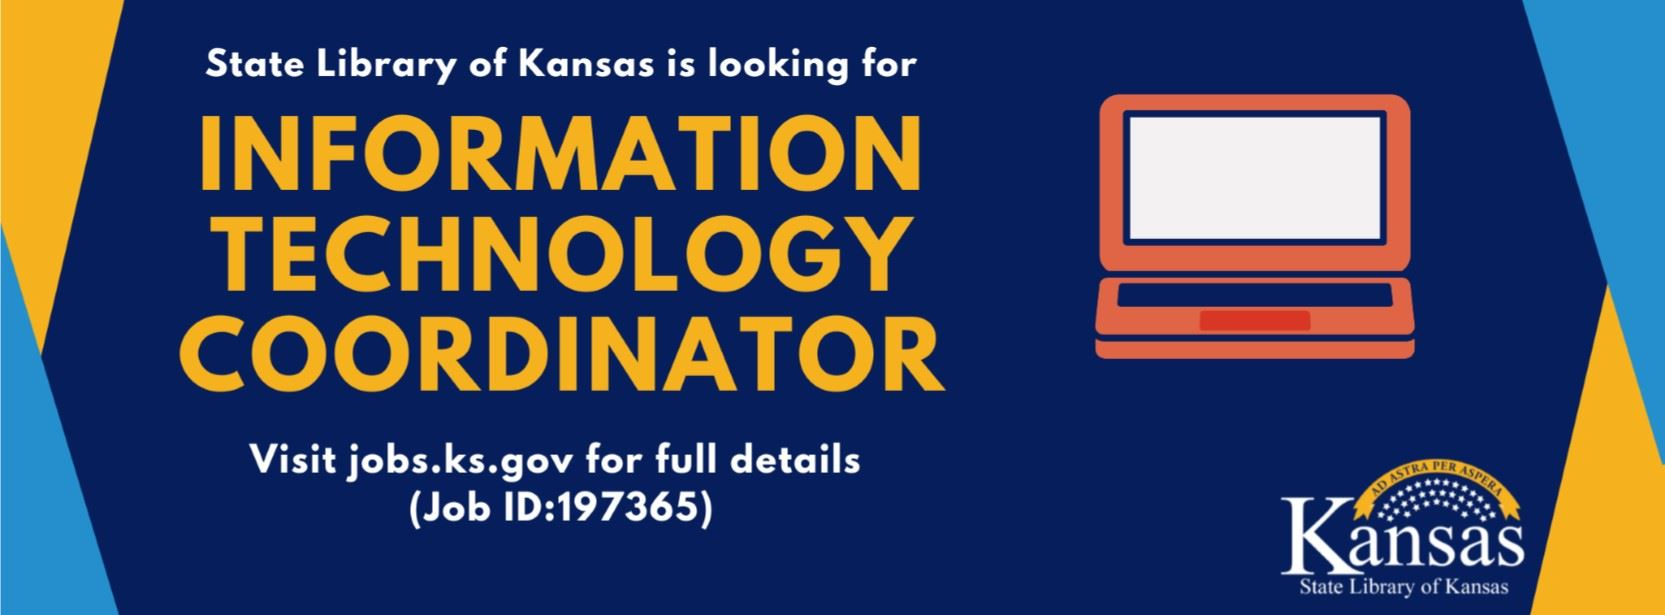 State Library of Kansas looking for i.t. coordinator